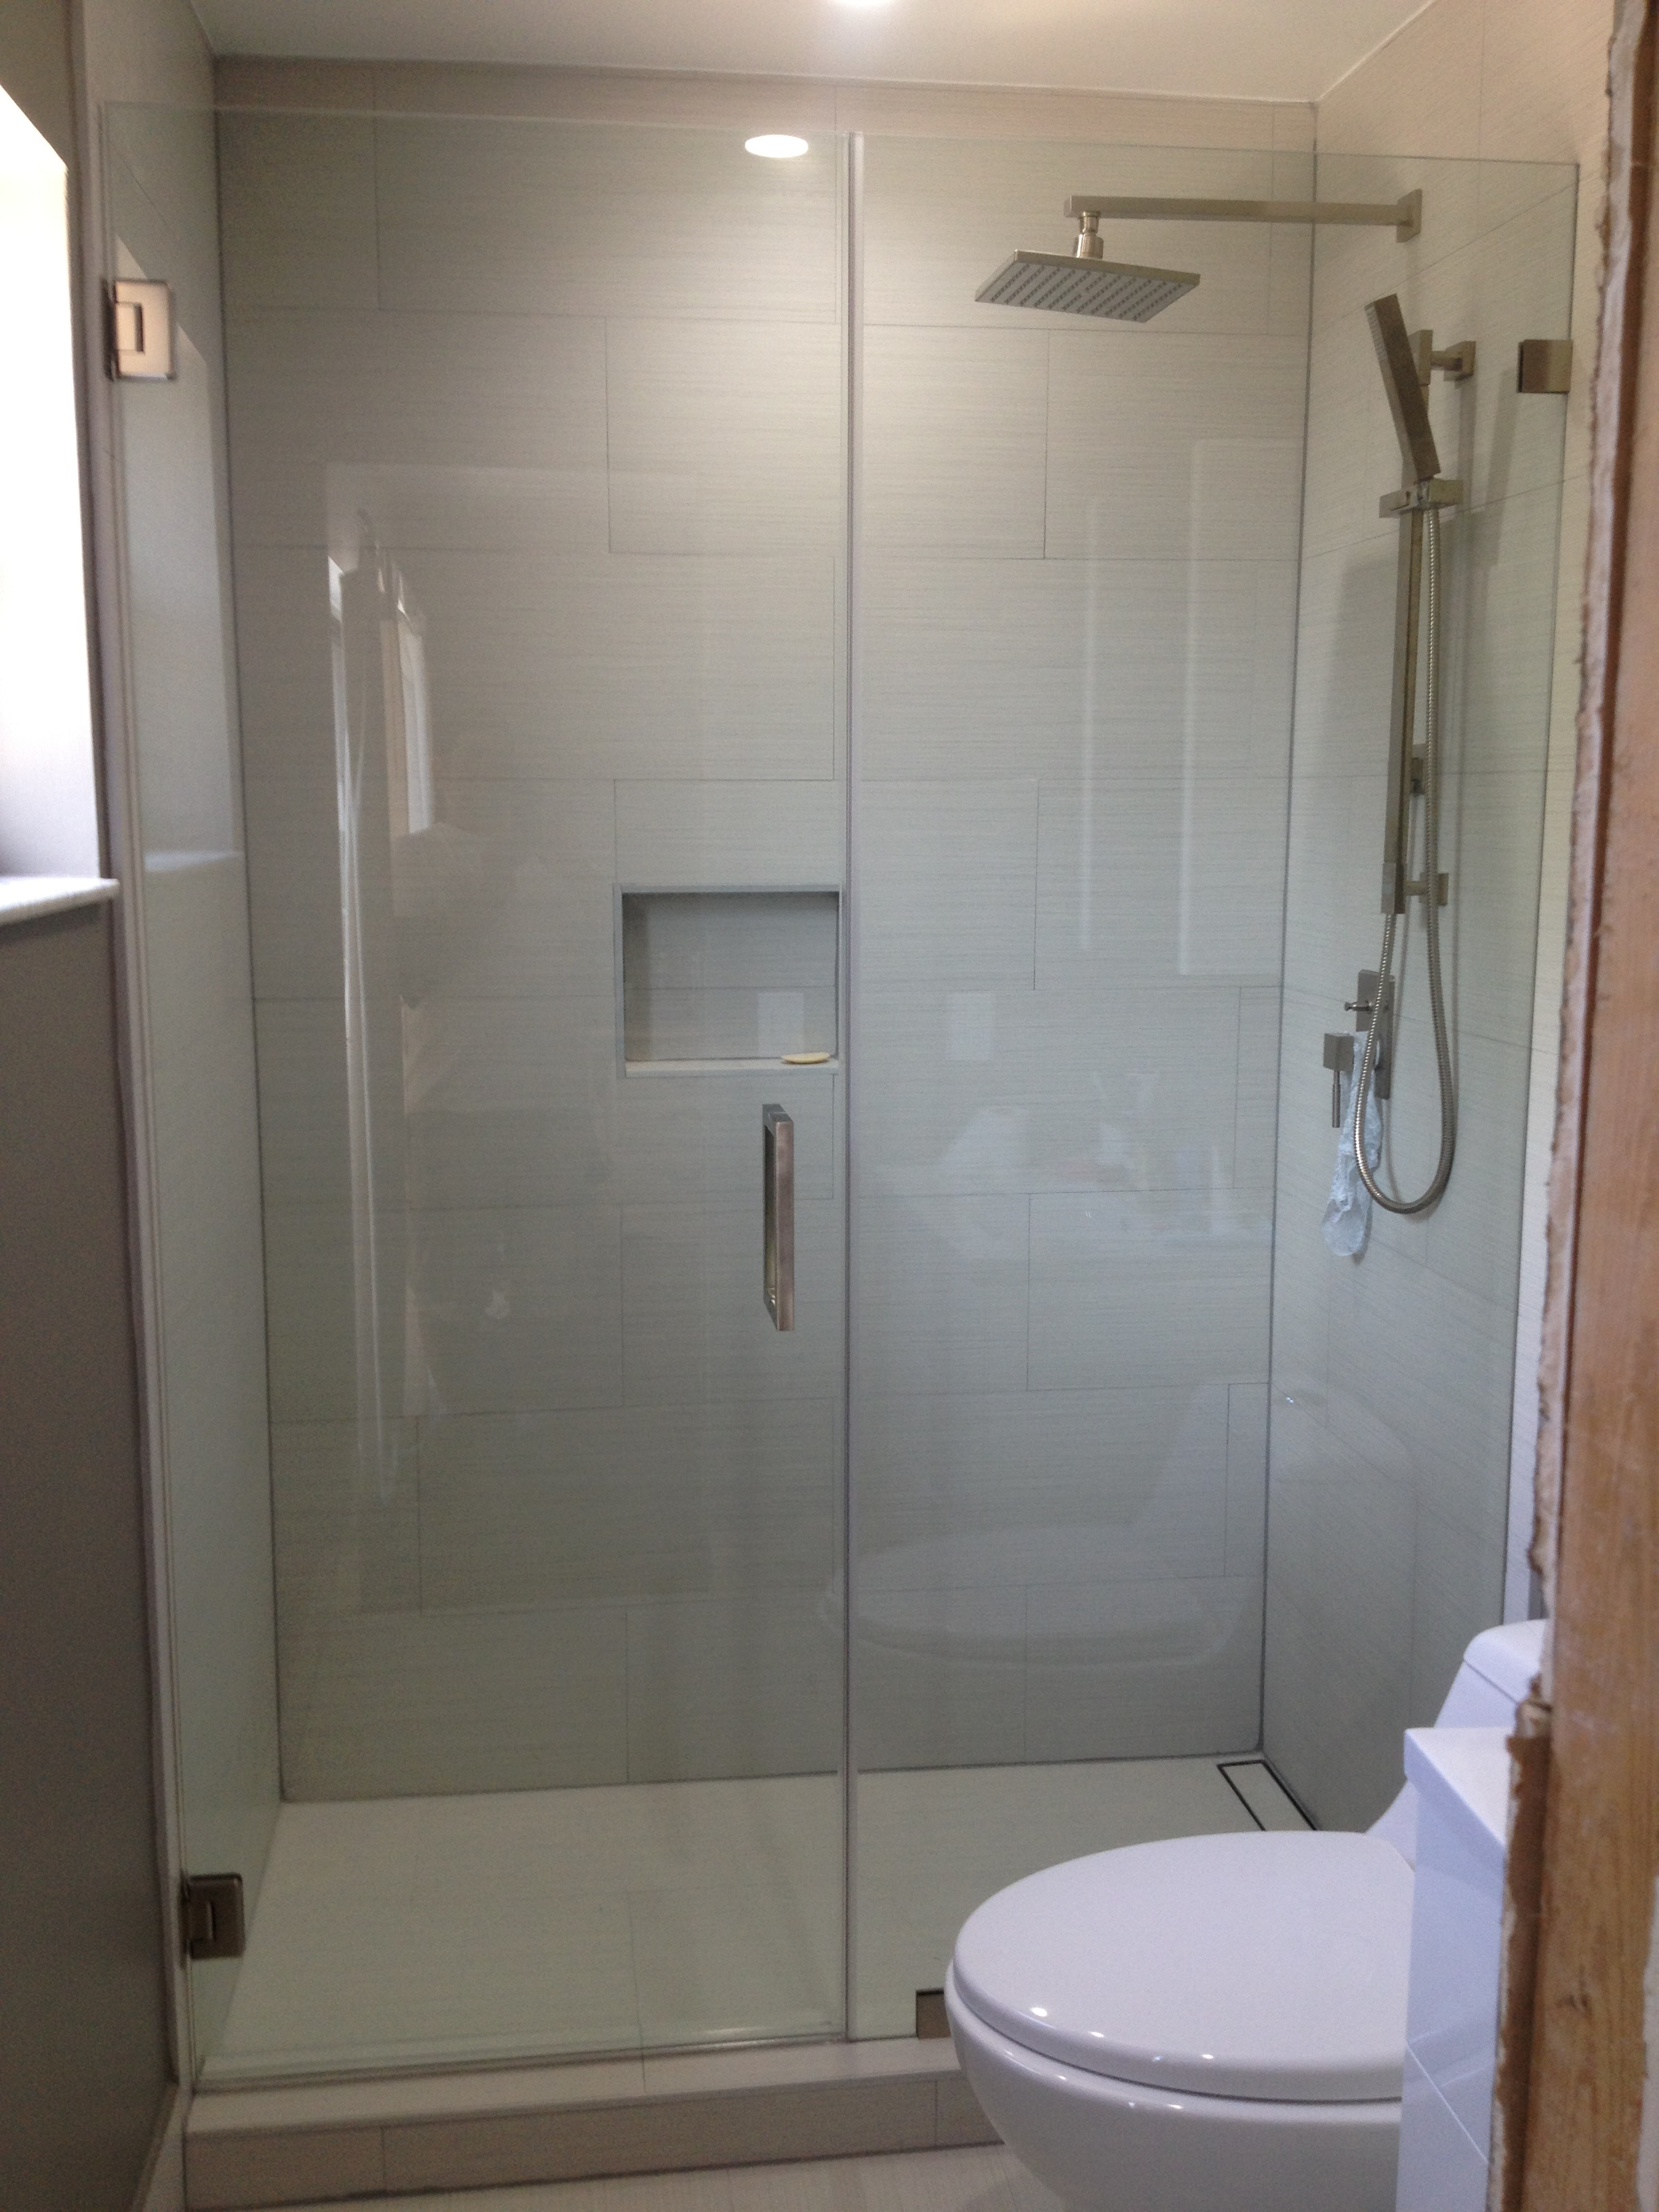 Bathroom shower doors frameless - Frameless Shower Door